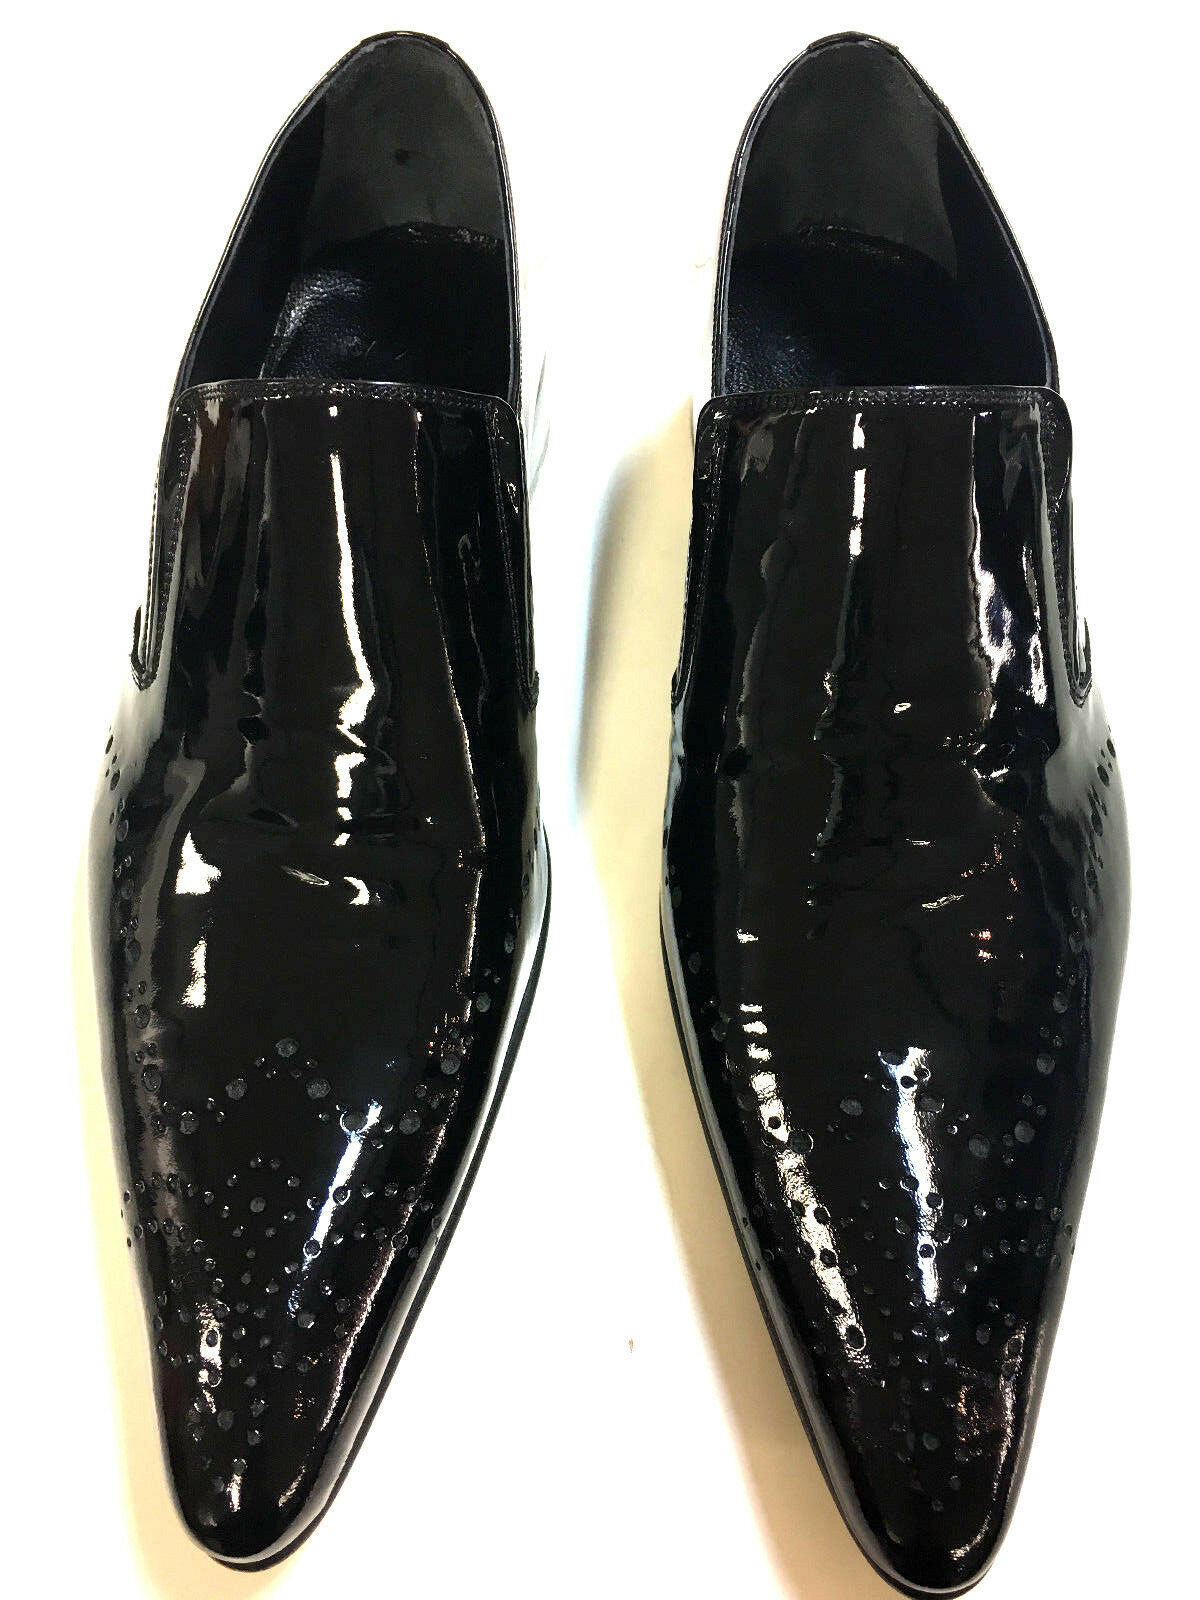 Chelsy VERNICE Designer Scarpe in pelle business party party business Slipper handmade fatto a mano 43 5308e0